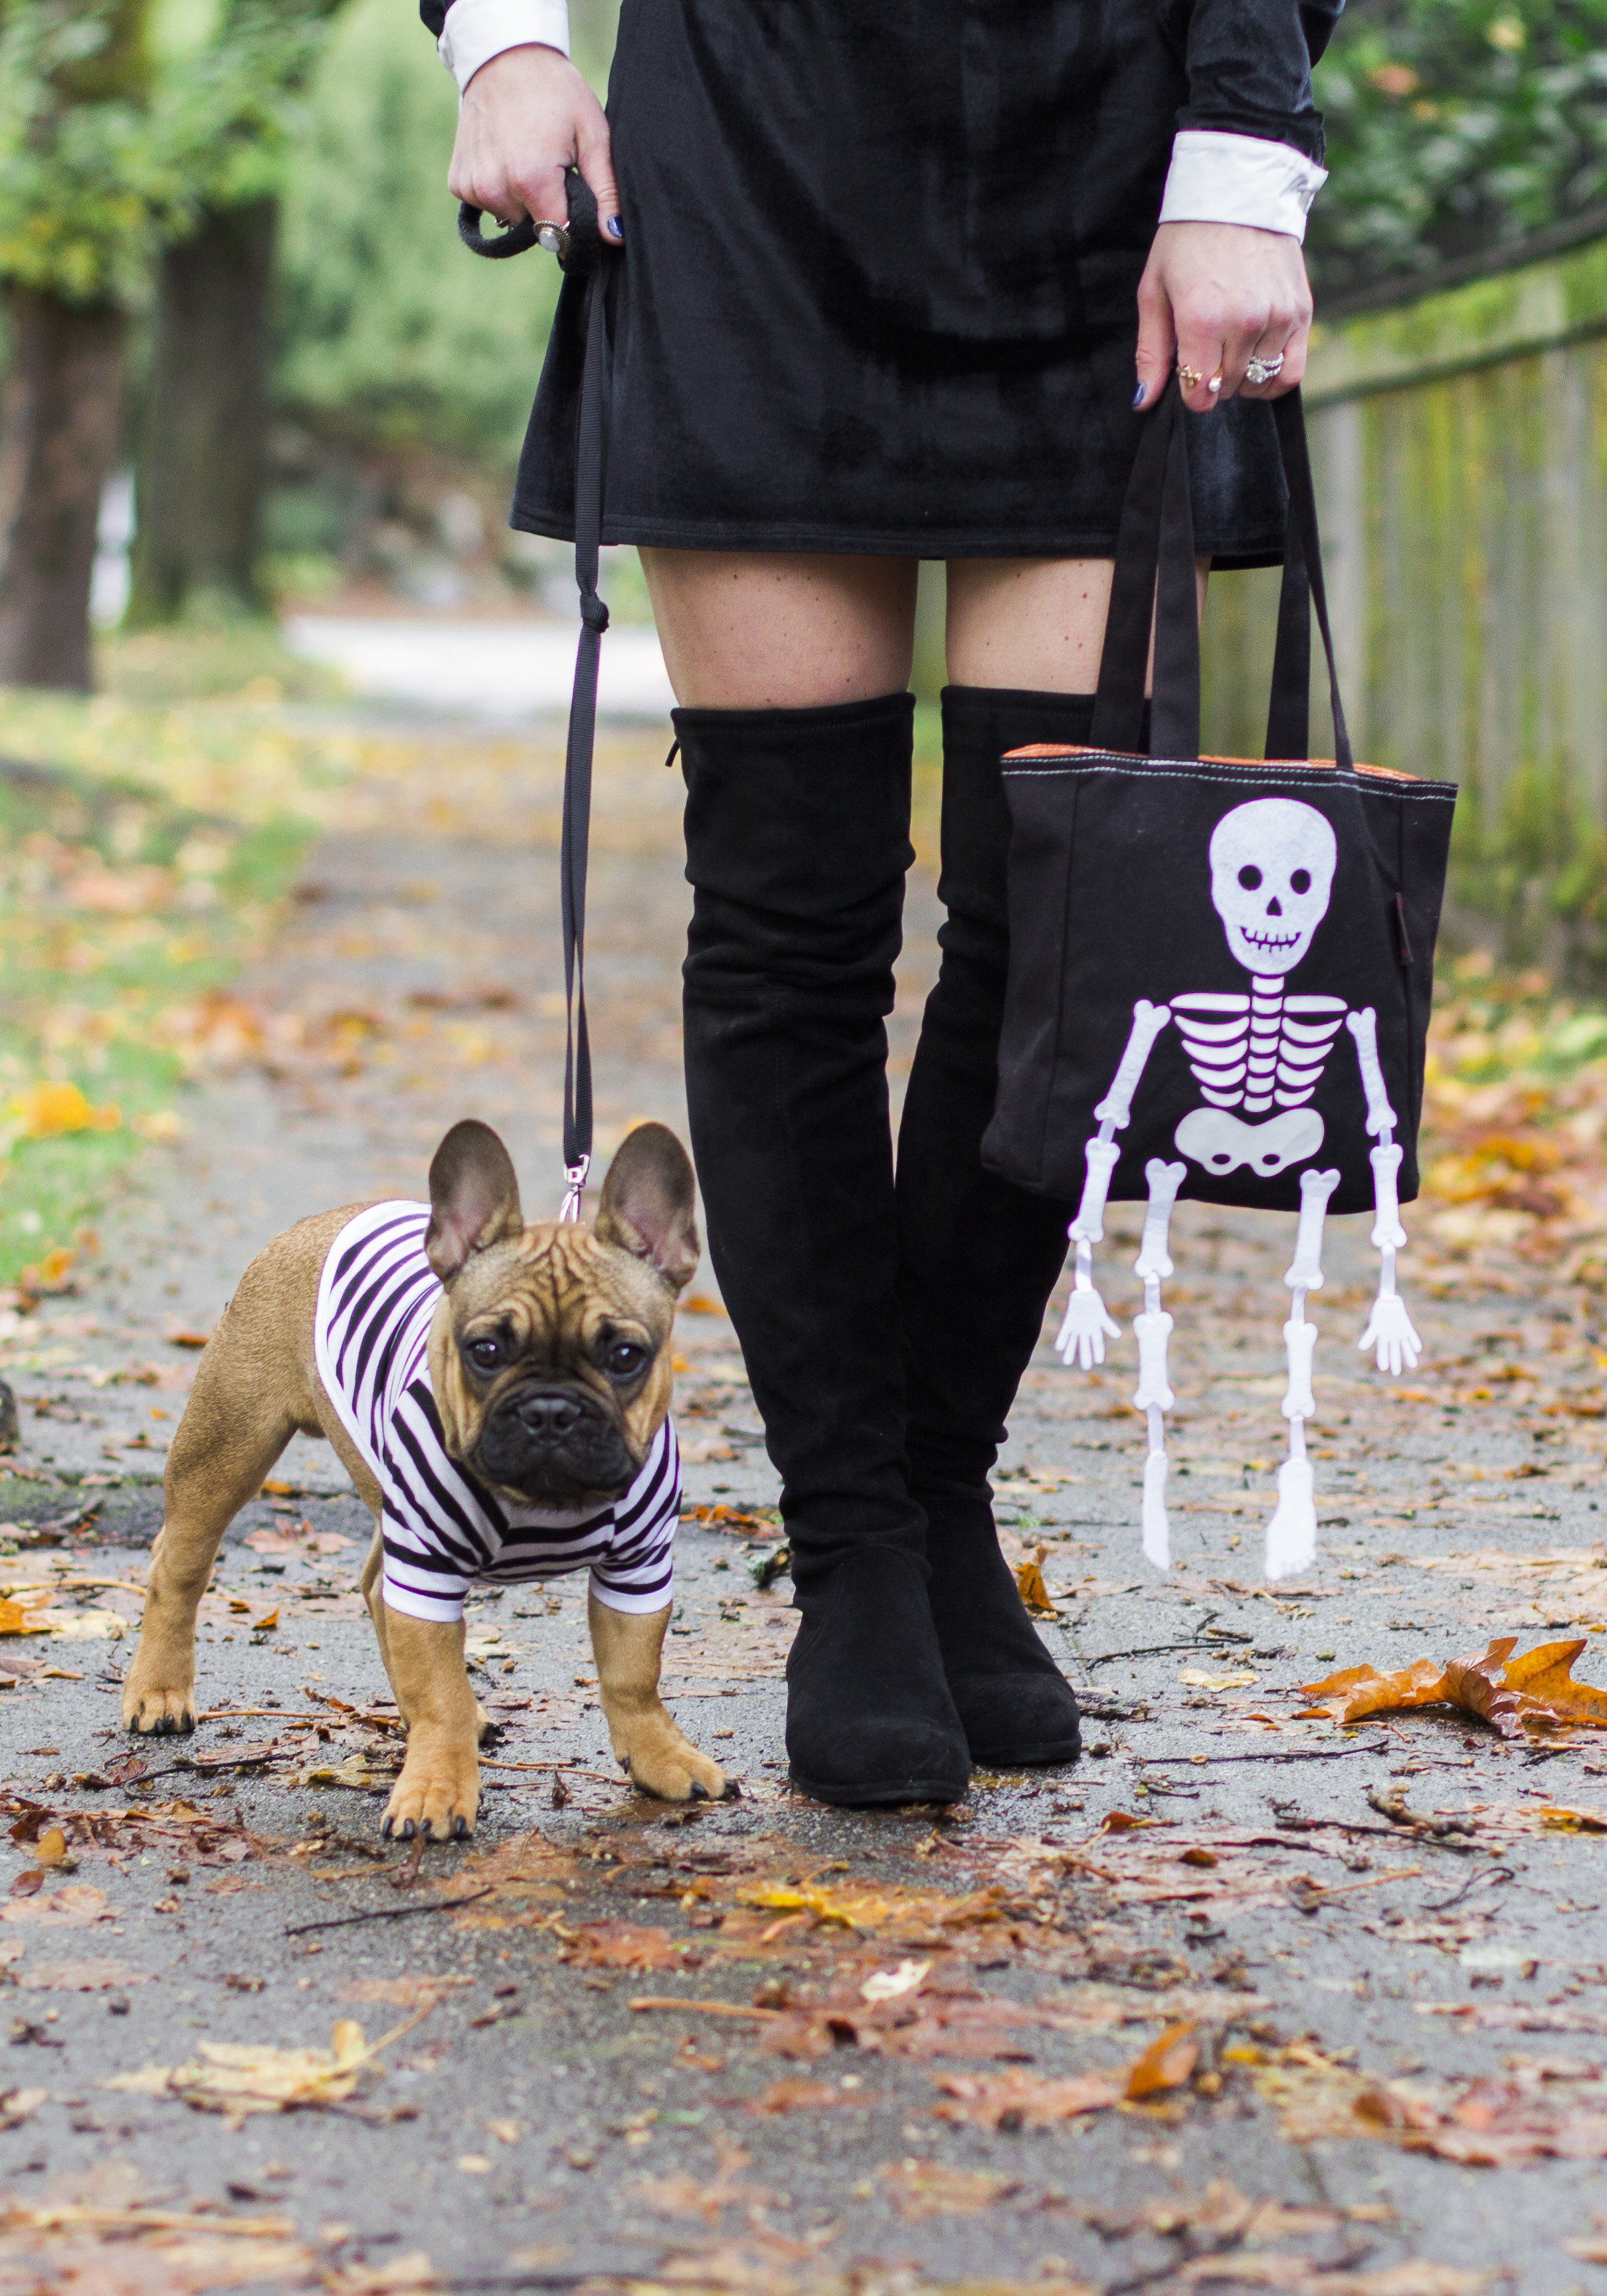 Easy Halloween costume, Addams Family costumes, french bulldog costume, Wednesday Addams DIY costume, Halloween hostess gifts from Papyrus